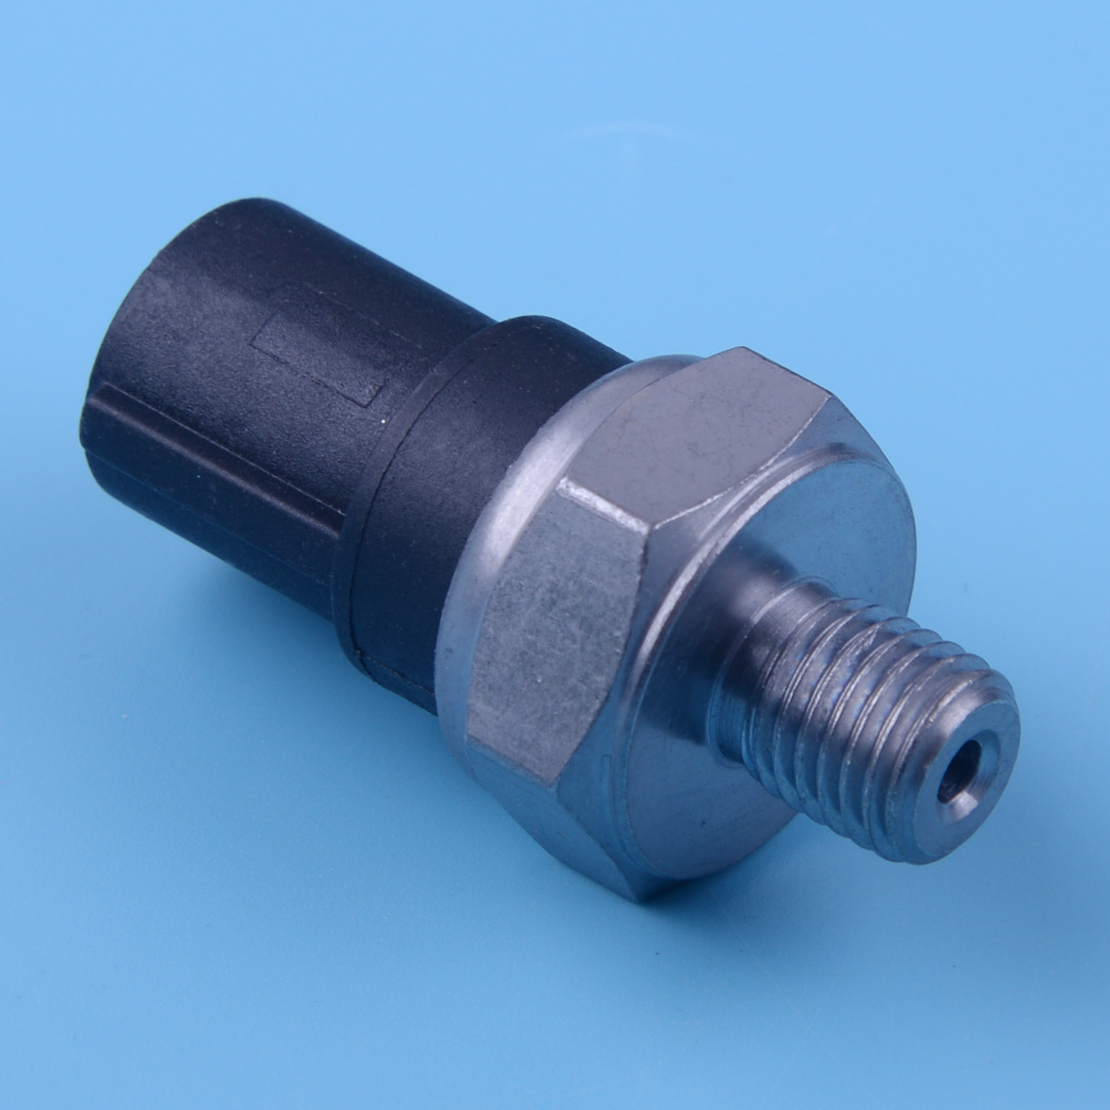 Vtec Oil Pressure Switch - Year of Clean Water